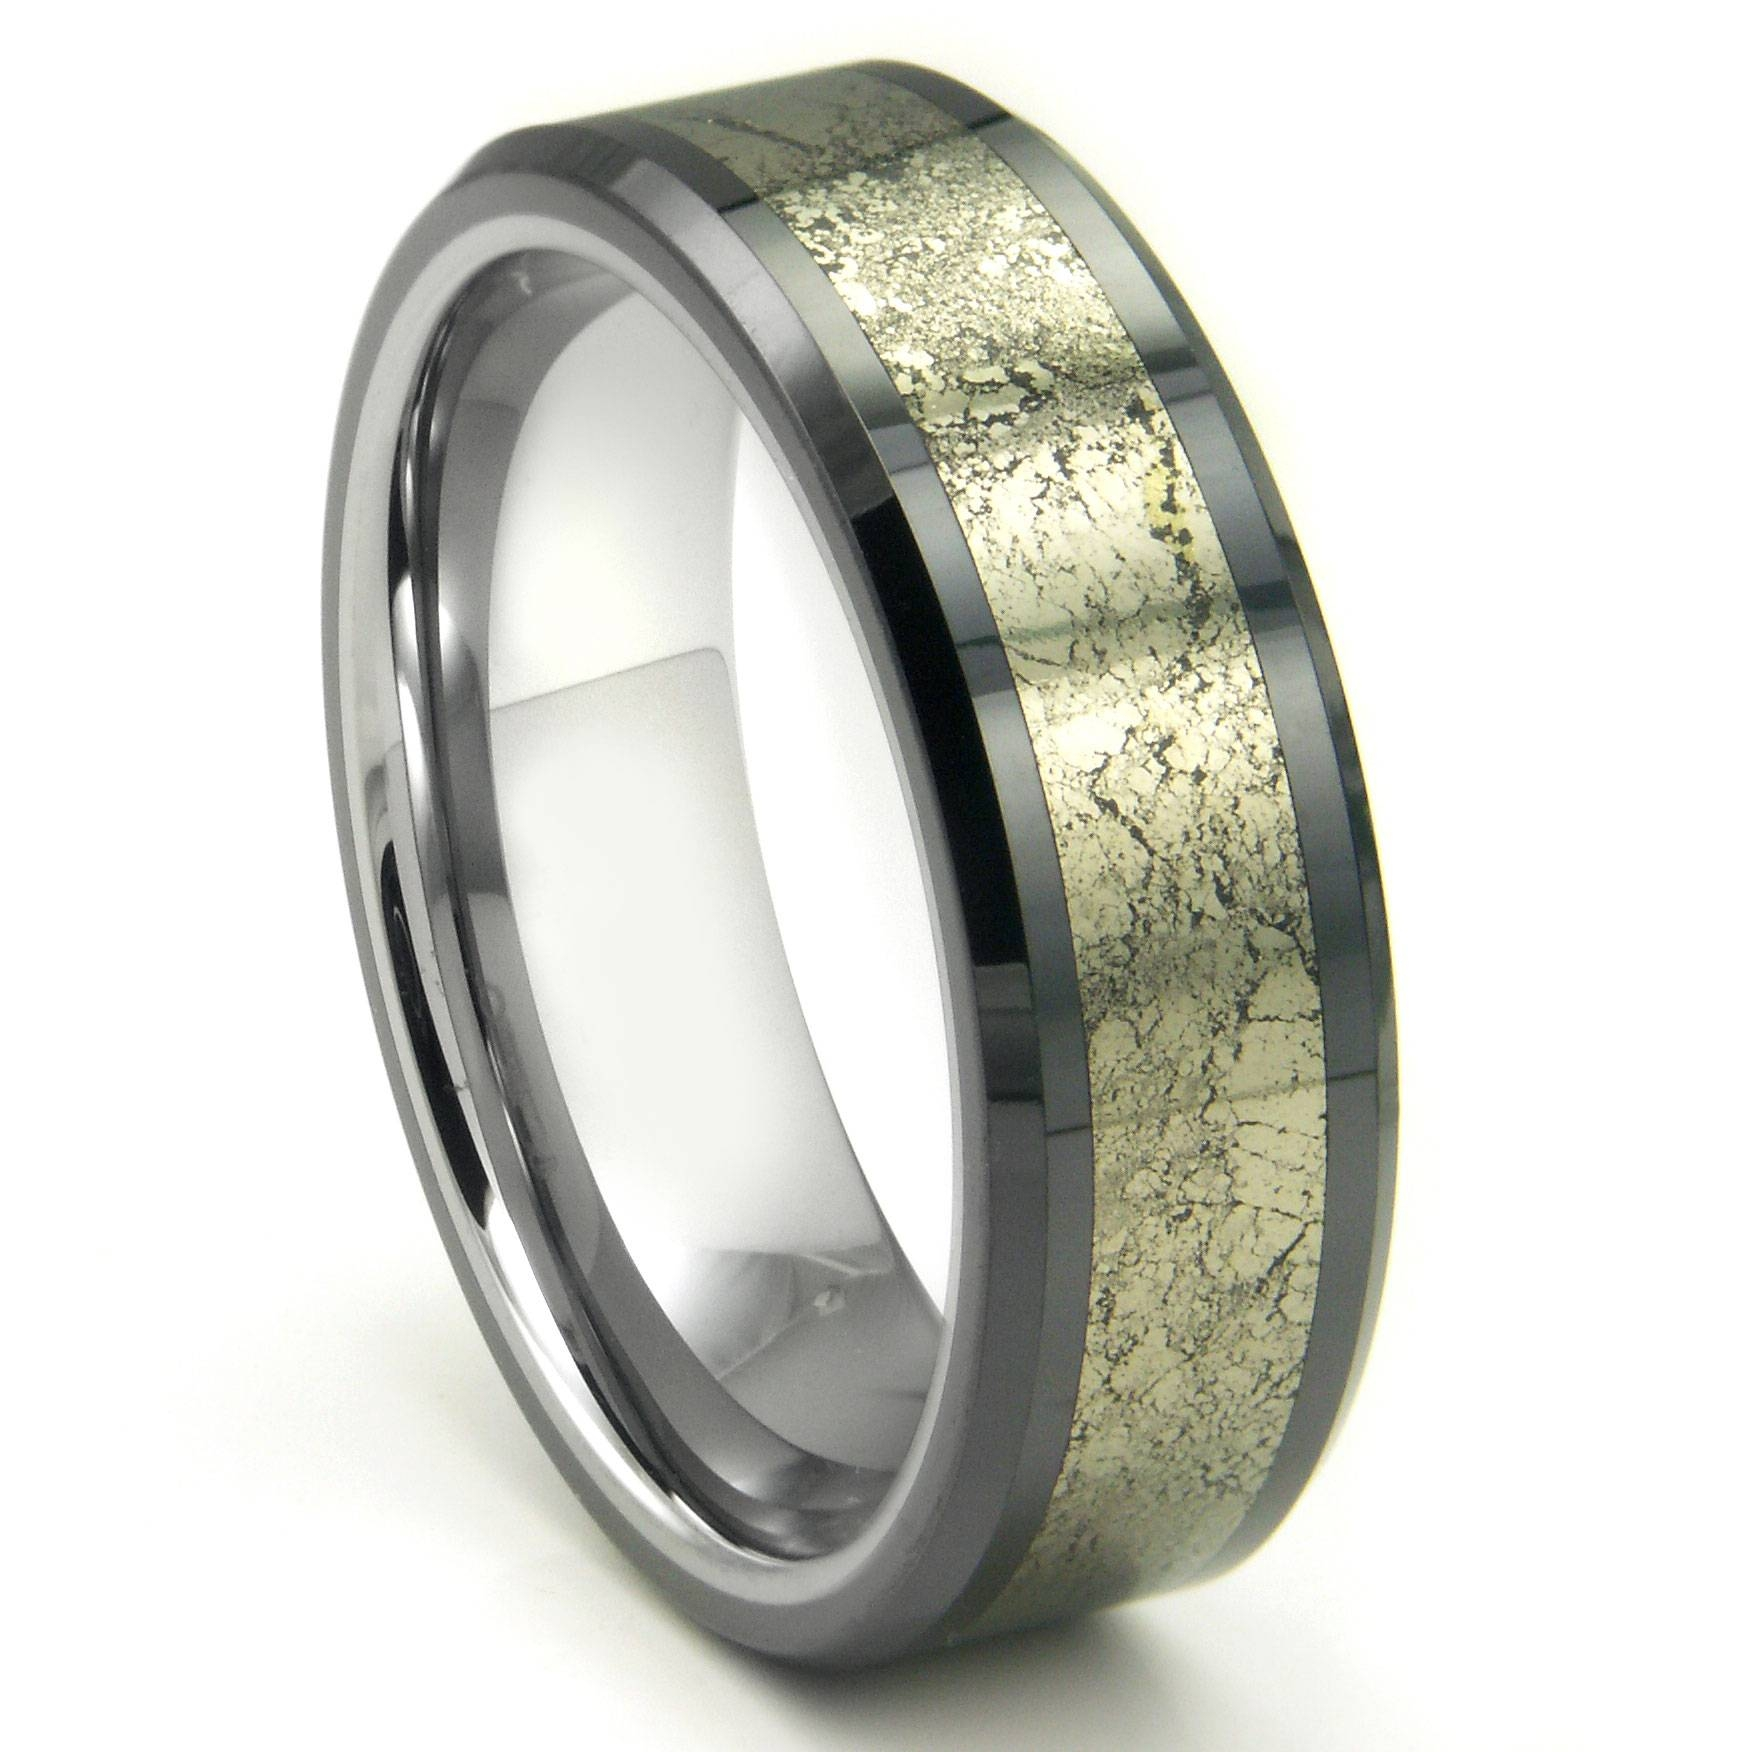 Wedding Rings : Tungsten Wedding Bands For Men Striking Design Of Within Unique Tungsten Wedding Rings (View 2 of 15)